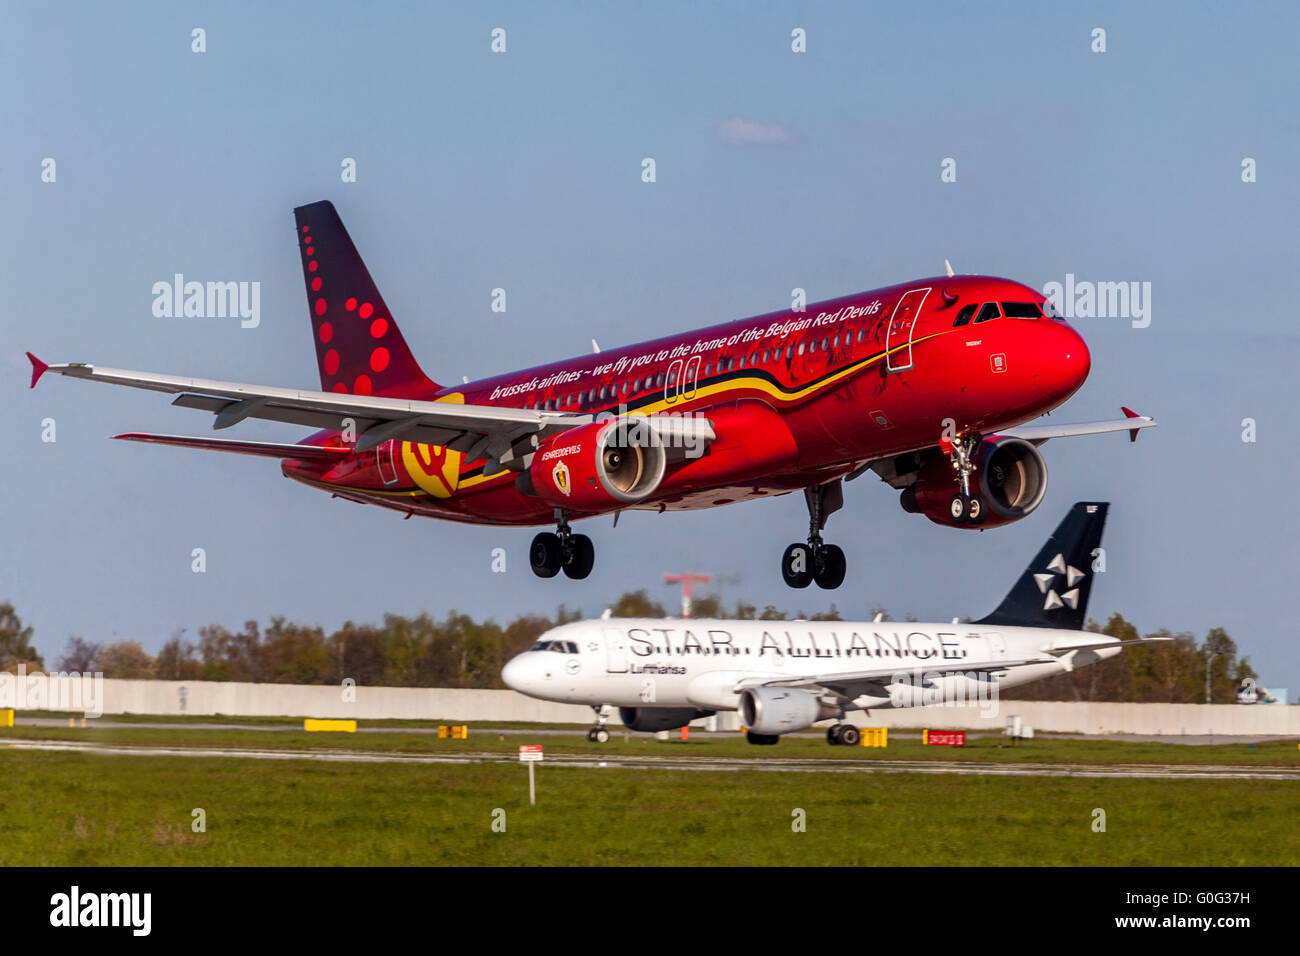 Plane Airbus A320 Brussels Airlines in Color Values Belgian football Red Devils approaching for a landing, Prague - Stock Image